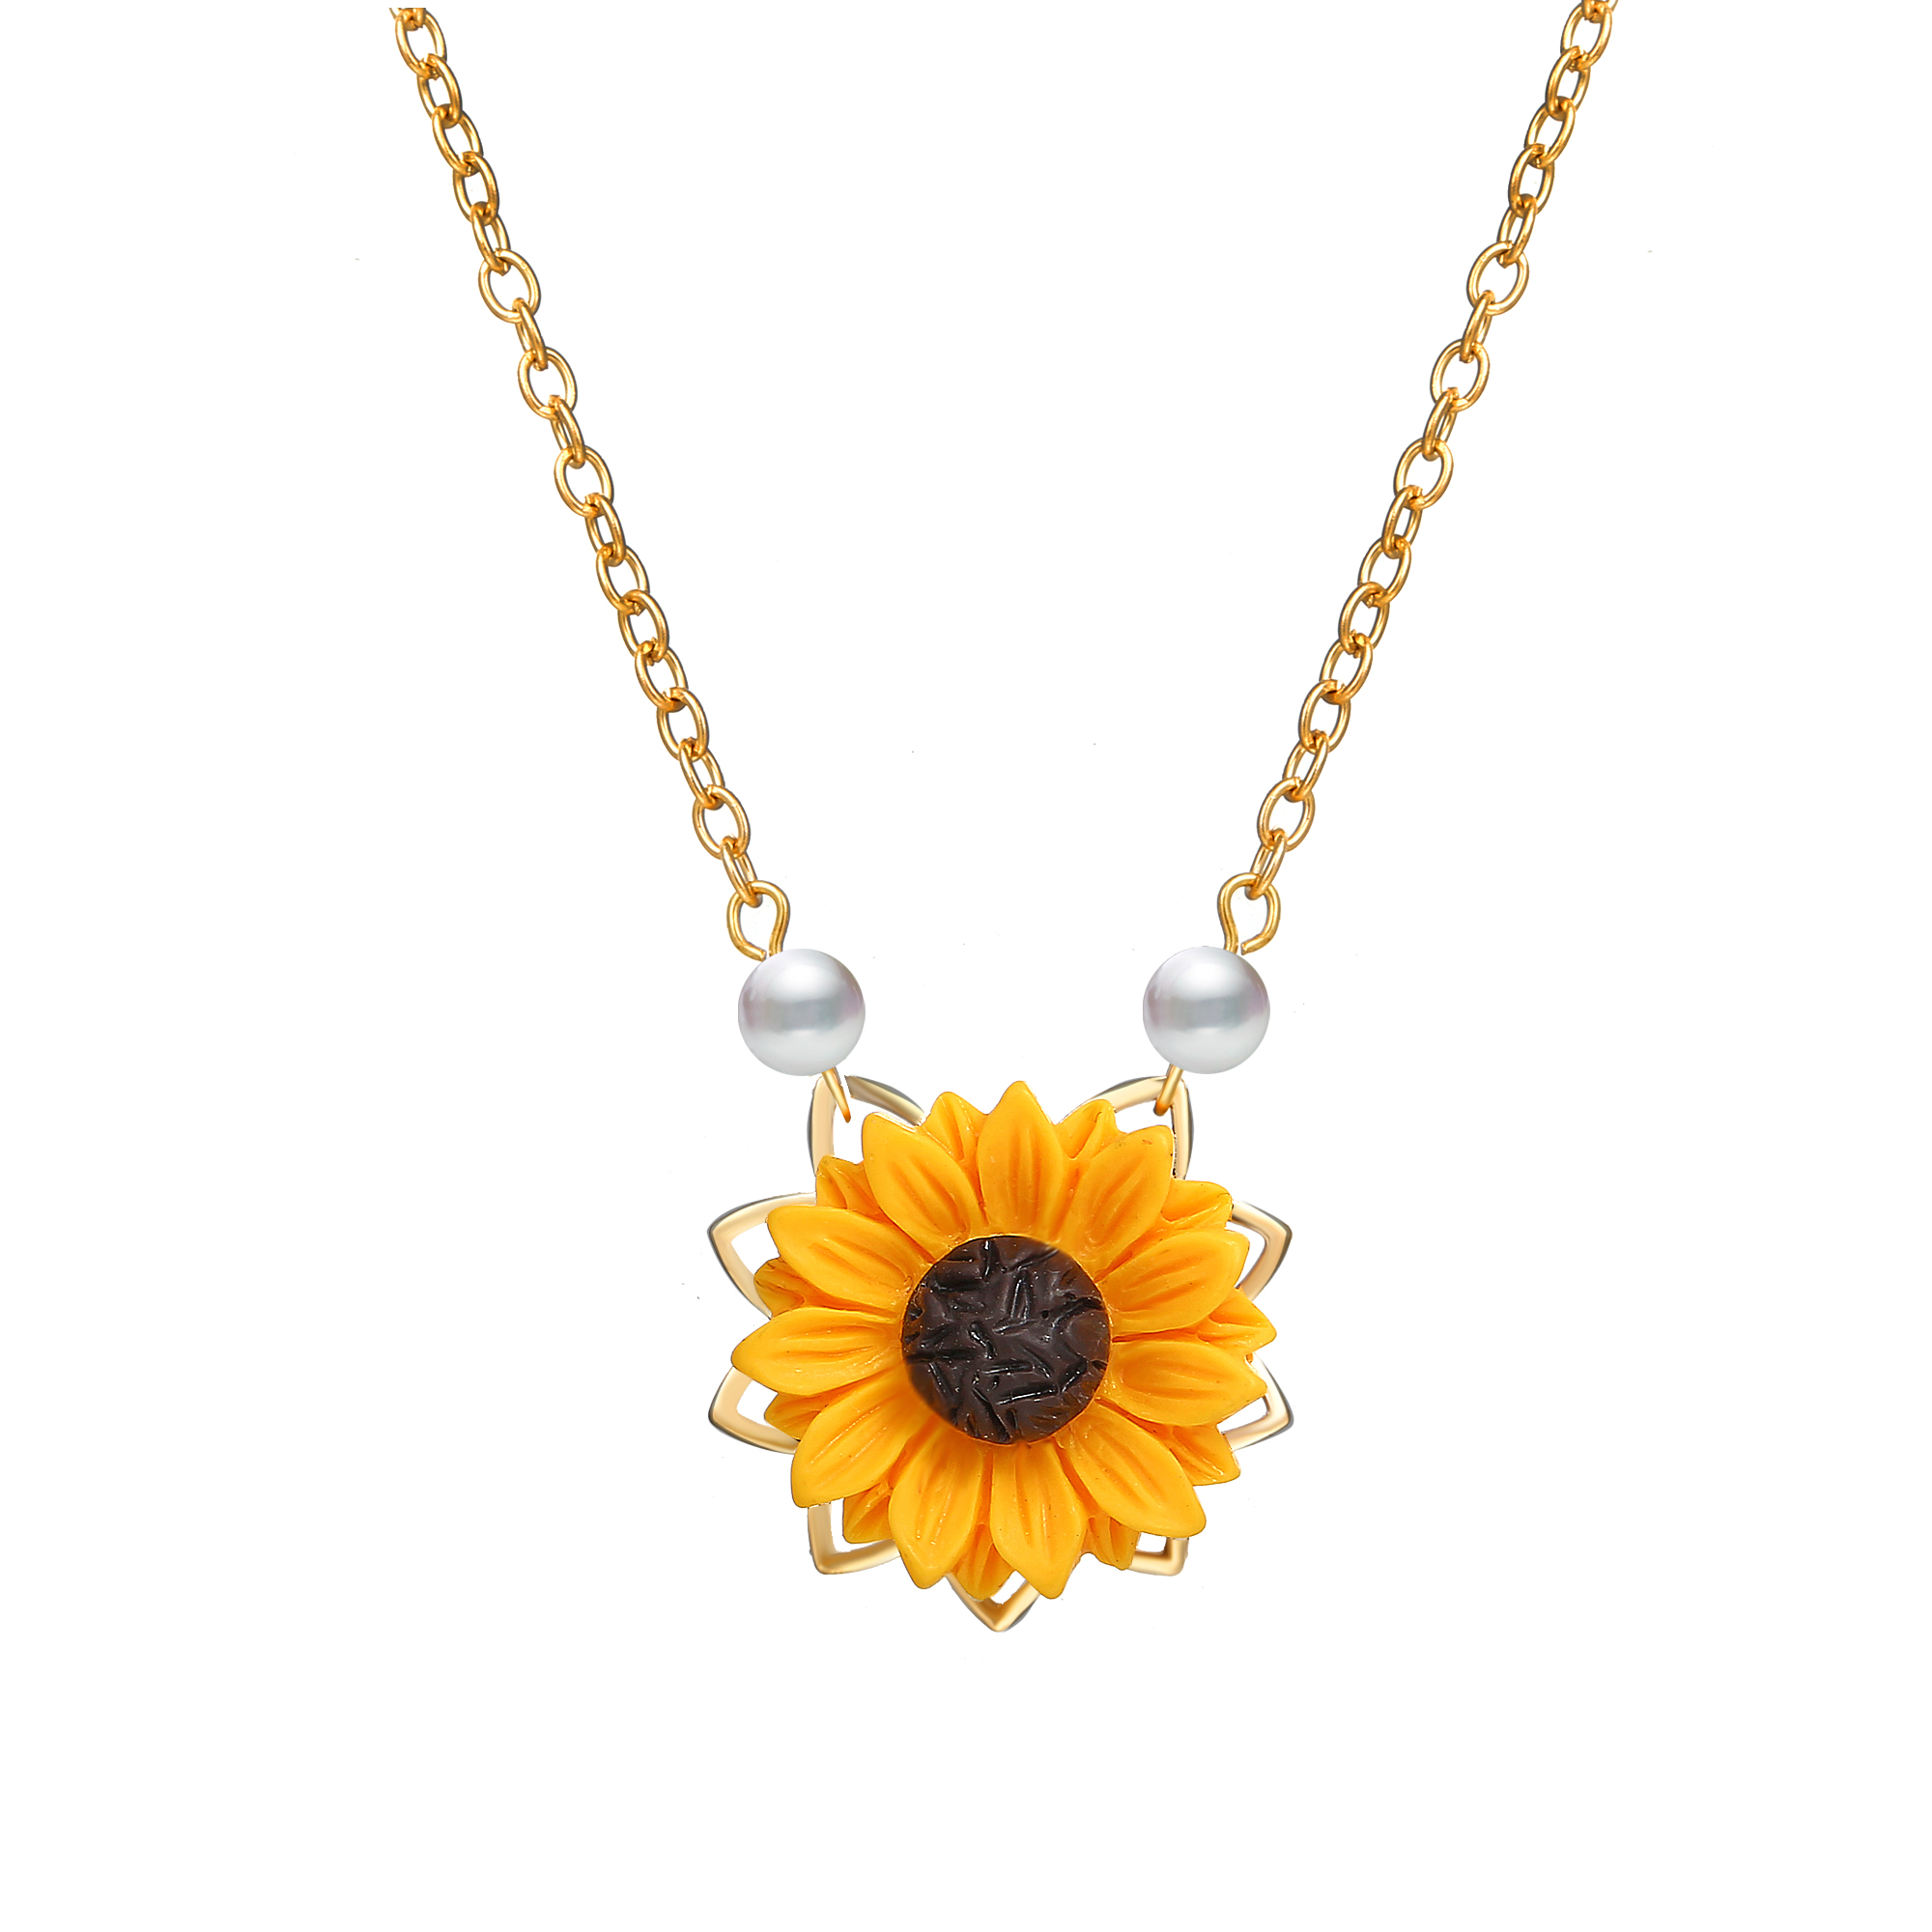 Poputton Imitation Pearl Sunflower Necklace For Women Clothes Accessories 3 Colors <font><b>Sun</b></font> Flower Pendant Necklaces Wedding <font><b>Jewelry</b></font> image